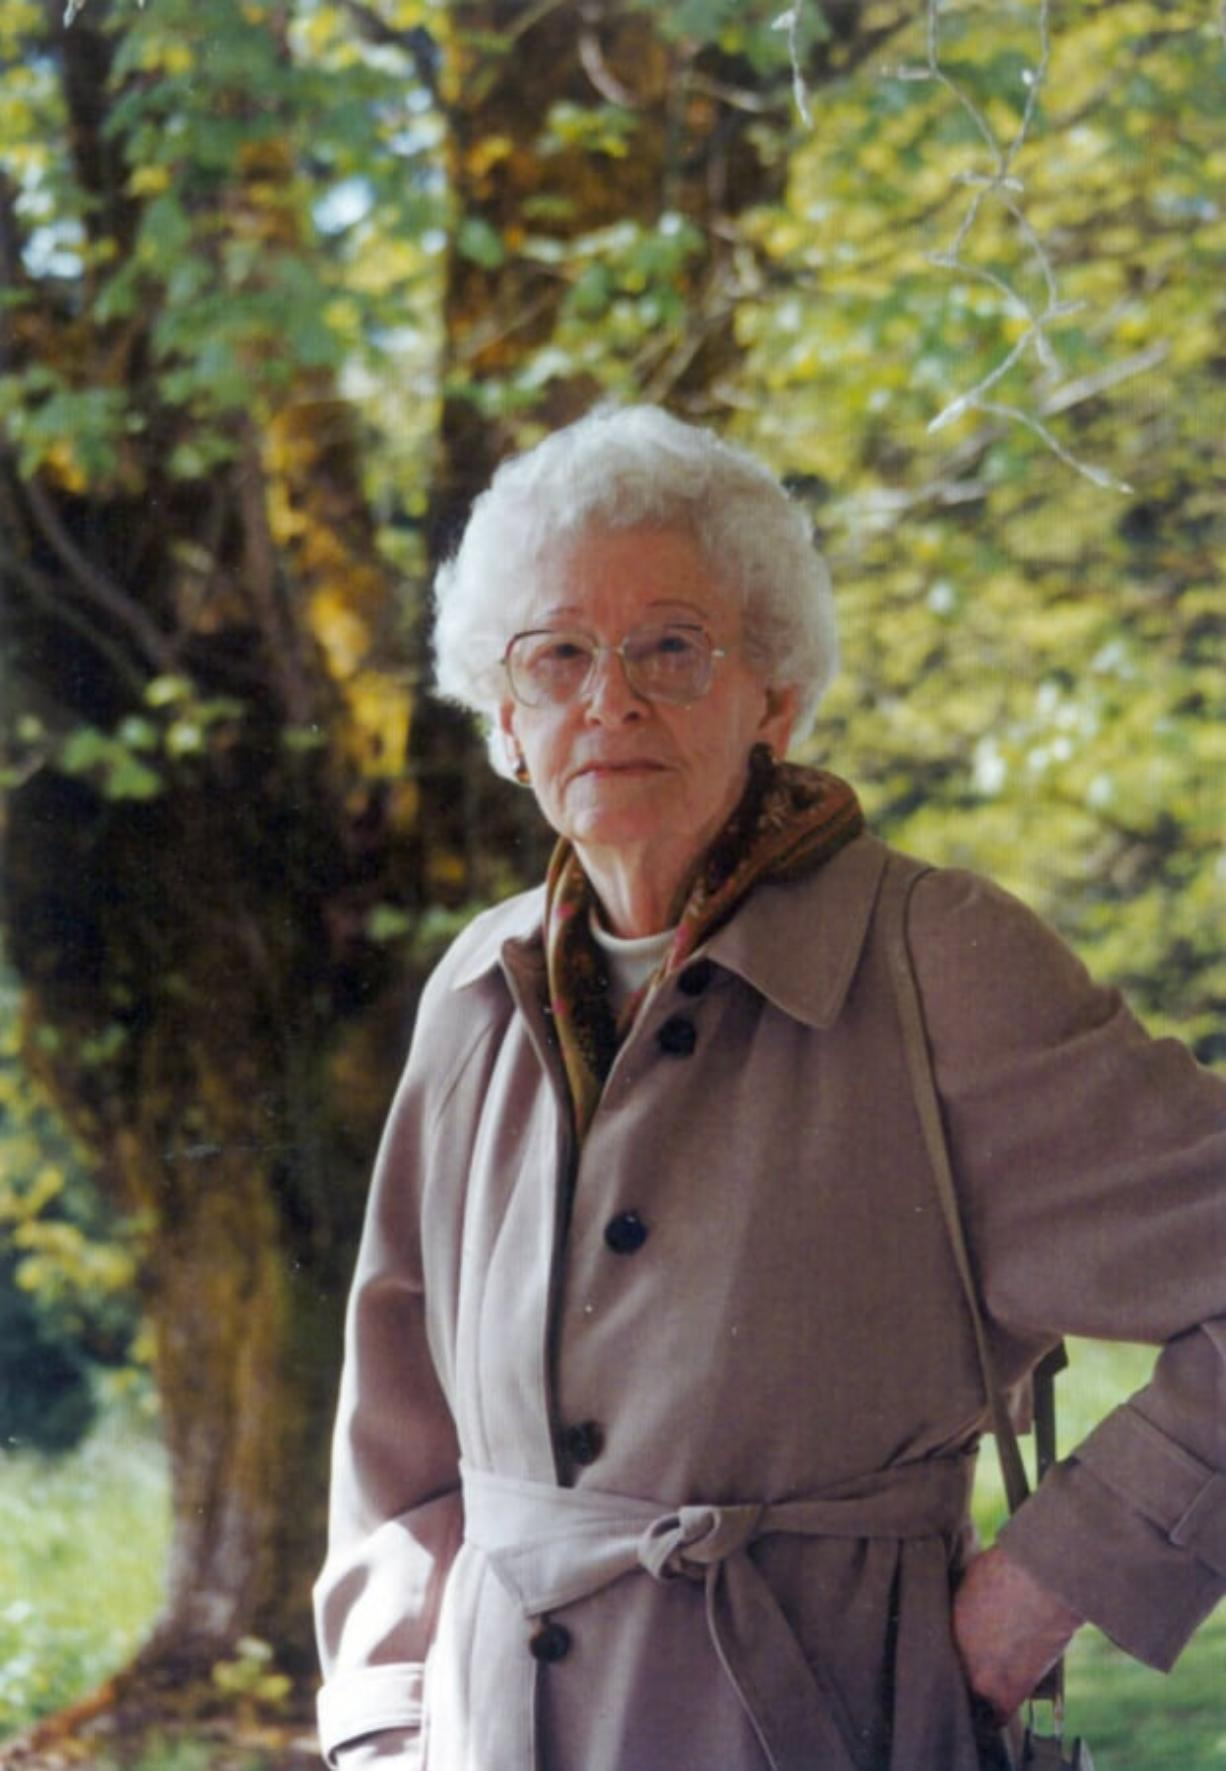 Late Vancouver poet Mary Barnard, toward the end of her life. Barnard attended Reed College and became a respected modernist poet. She published eight books in all — original poetry, translations of ancient Greek, a memoir and more.